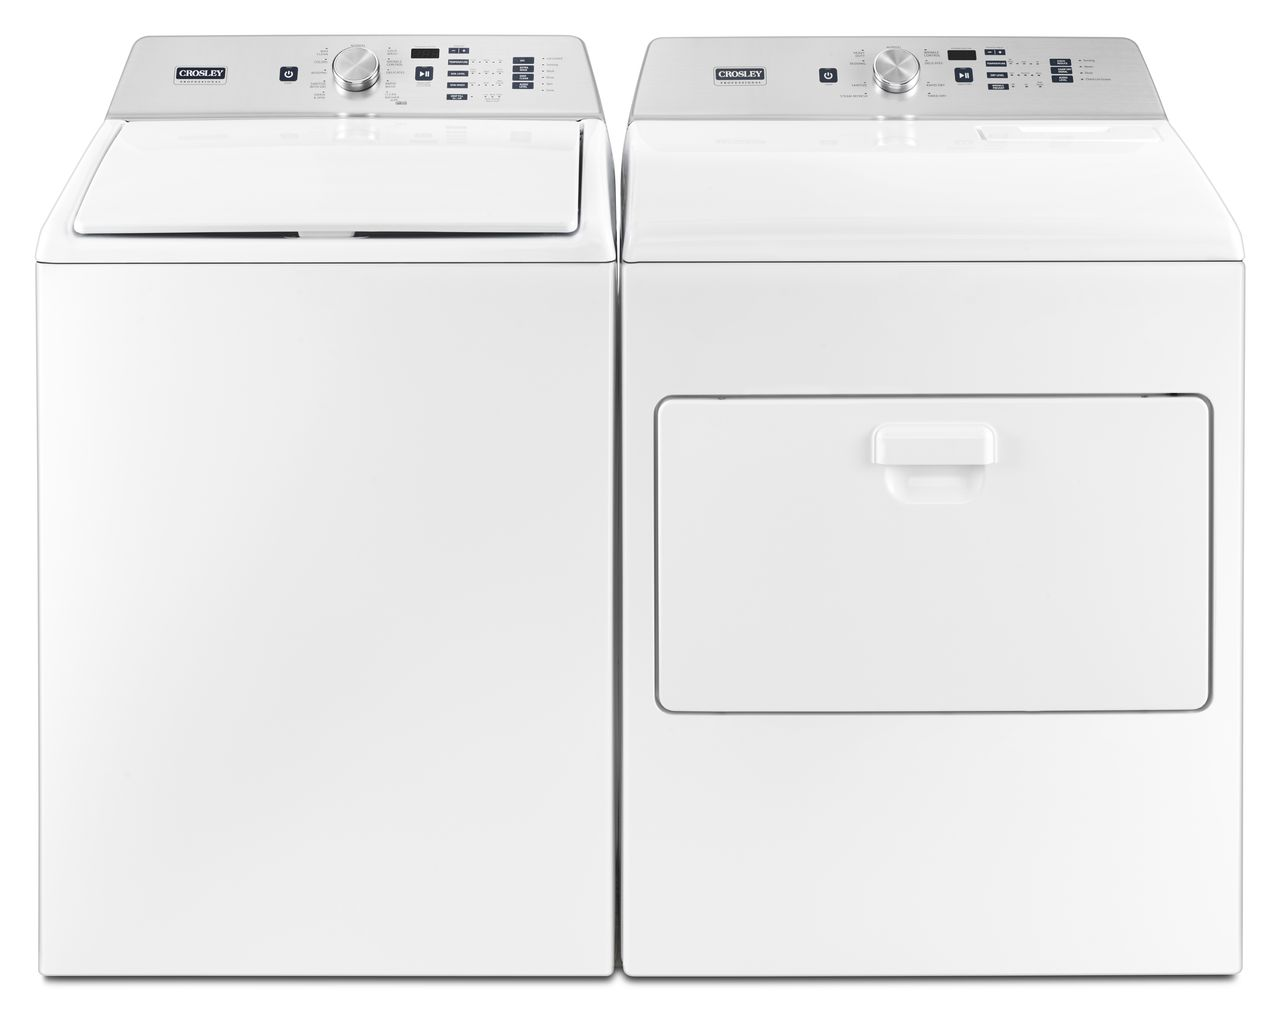 Crosley Professional Washer And Dryer Set